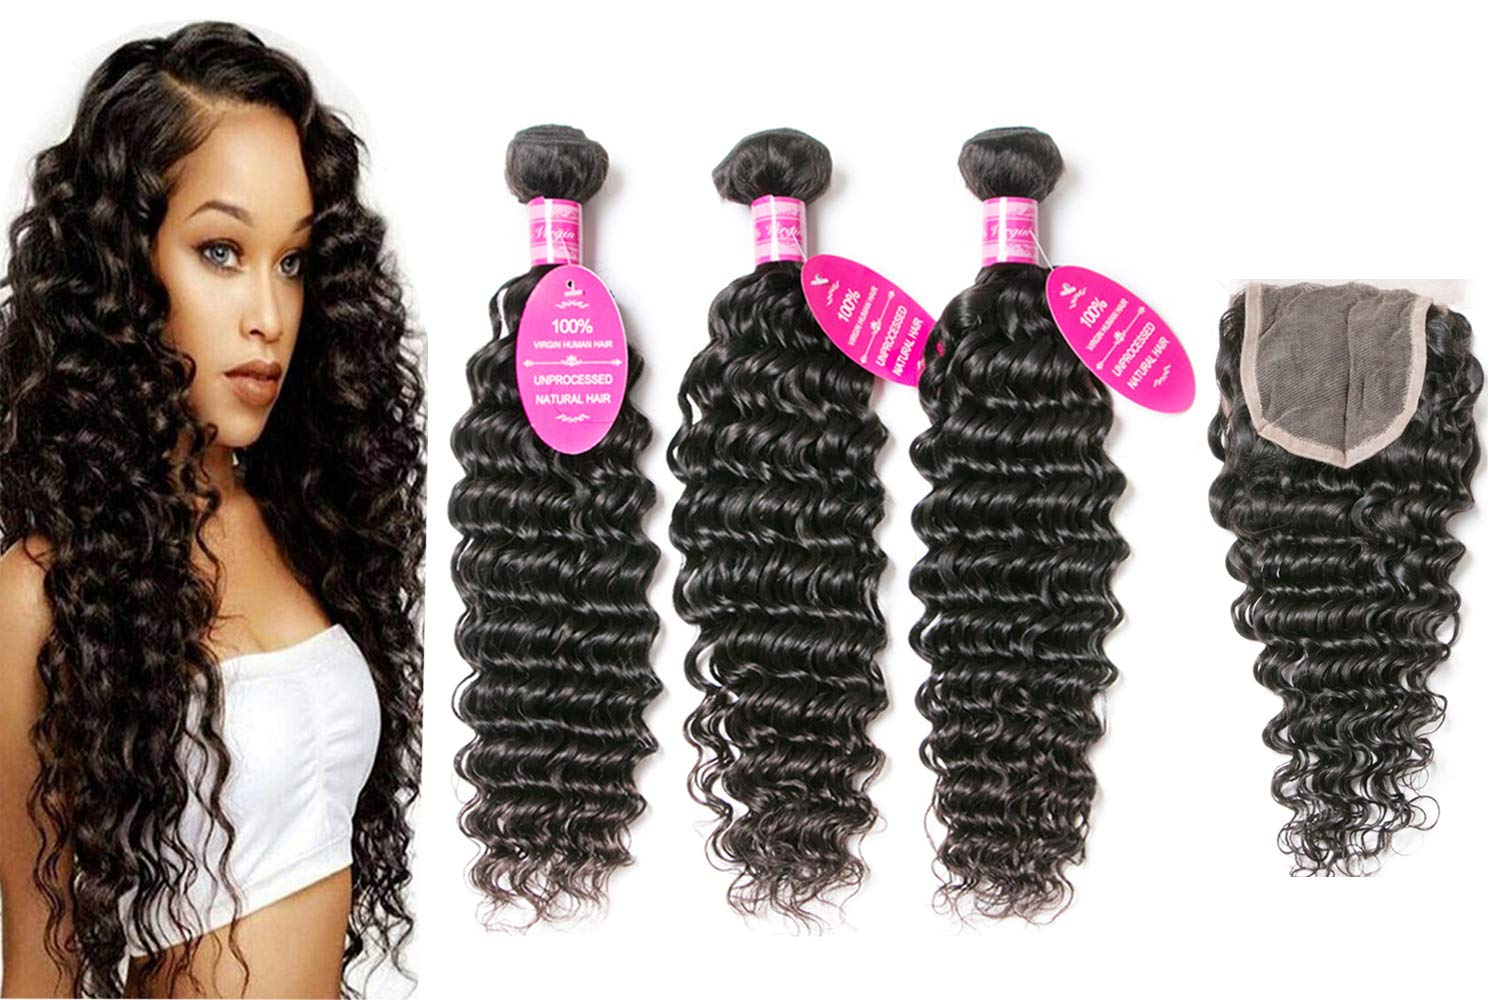 Loose Deep Wave Bundles with Closure 18 20 22+16 Unprocessed Brazilian Virgin Remy Human Hair 3 Bundles with Closure 4X4 Free Part Lace Natural with Baby Hair for Women 150% Density Wet and Wavy Hair